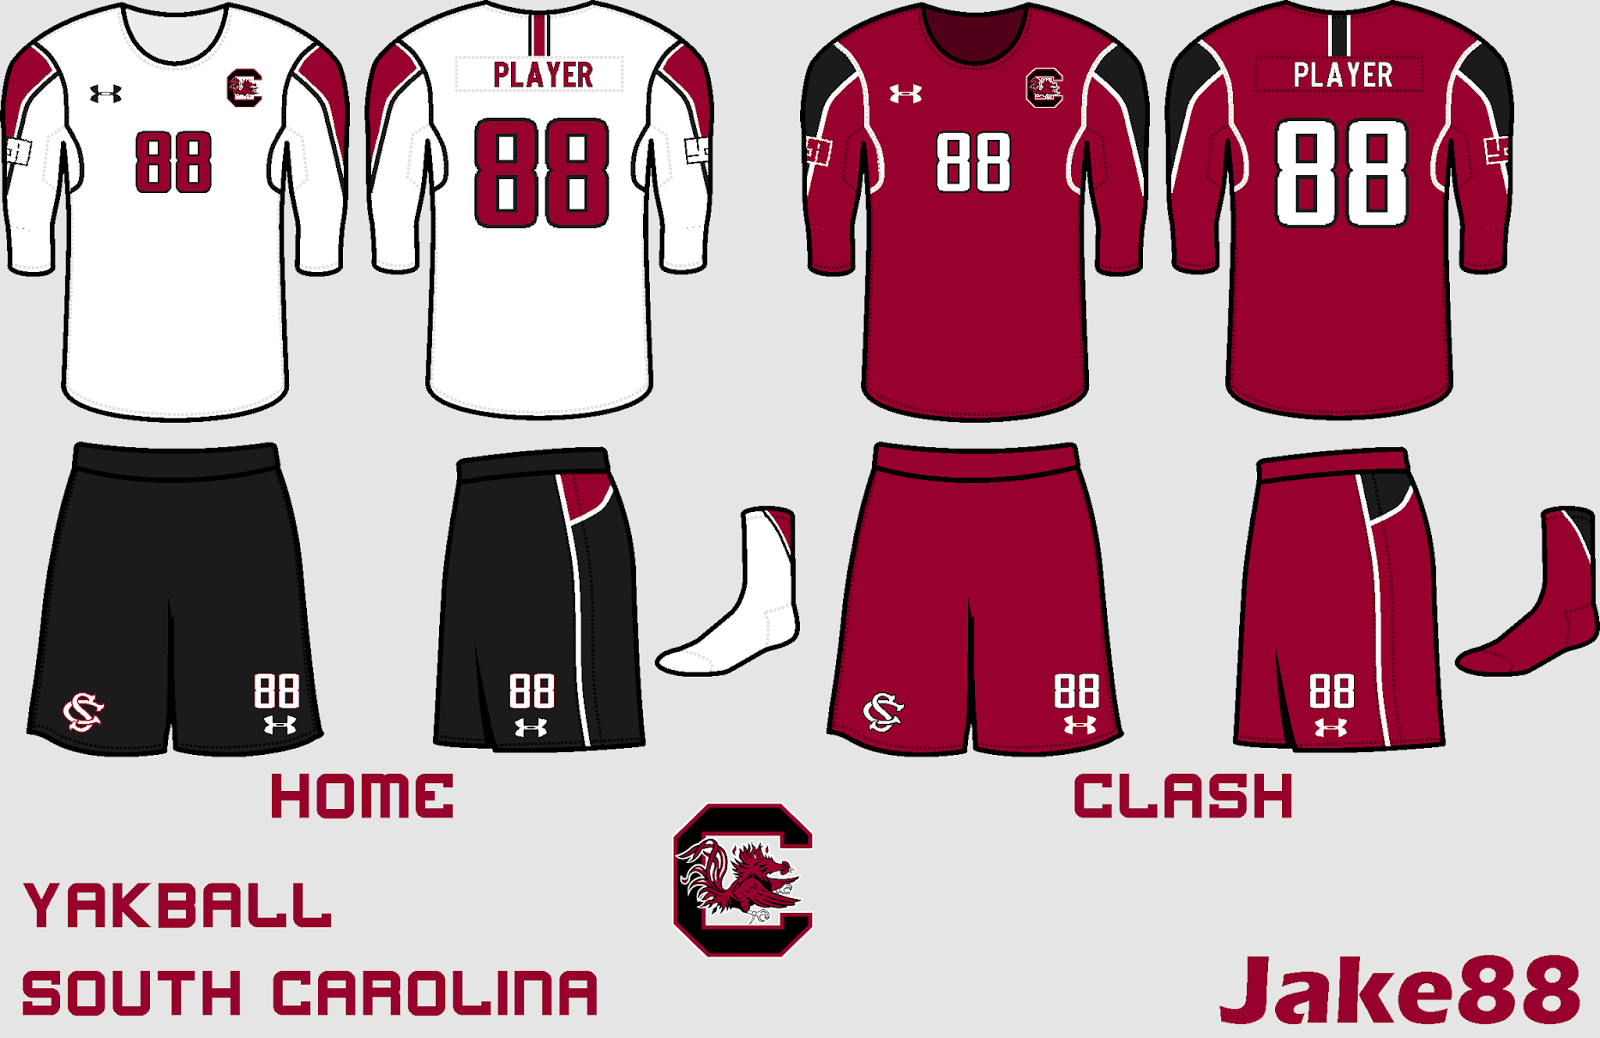 Yakball_Gamecocks_Jersey_Concept.png